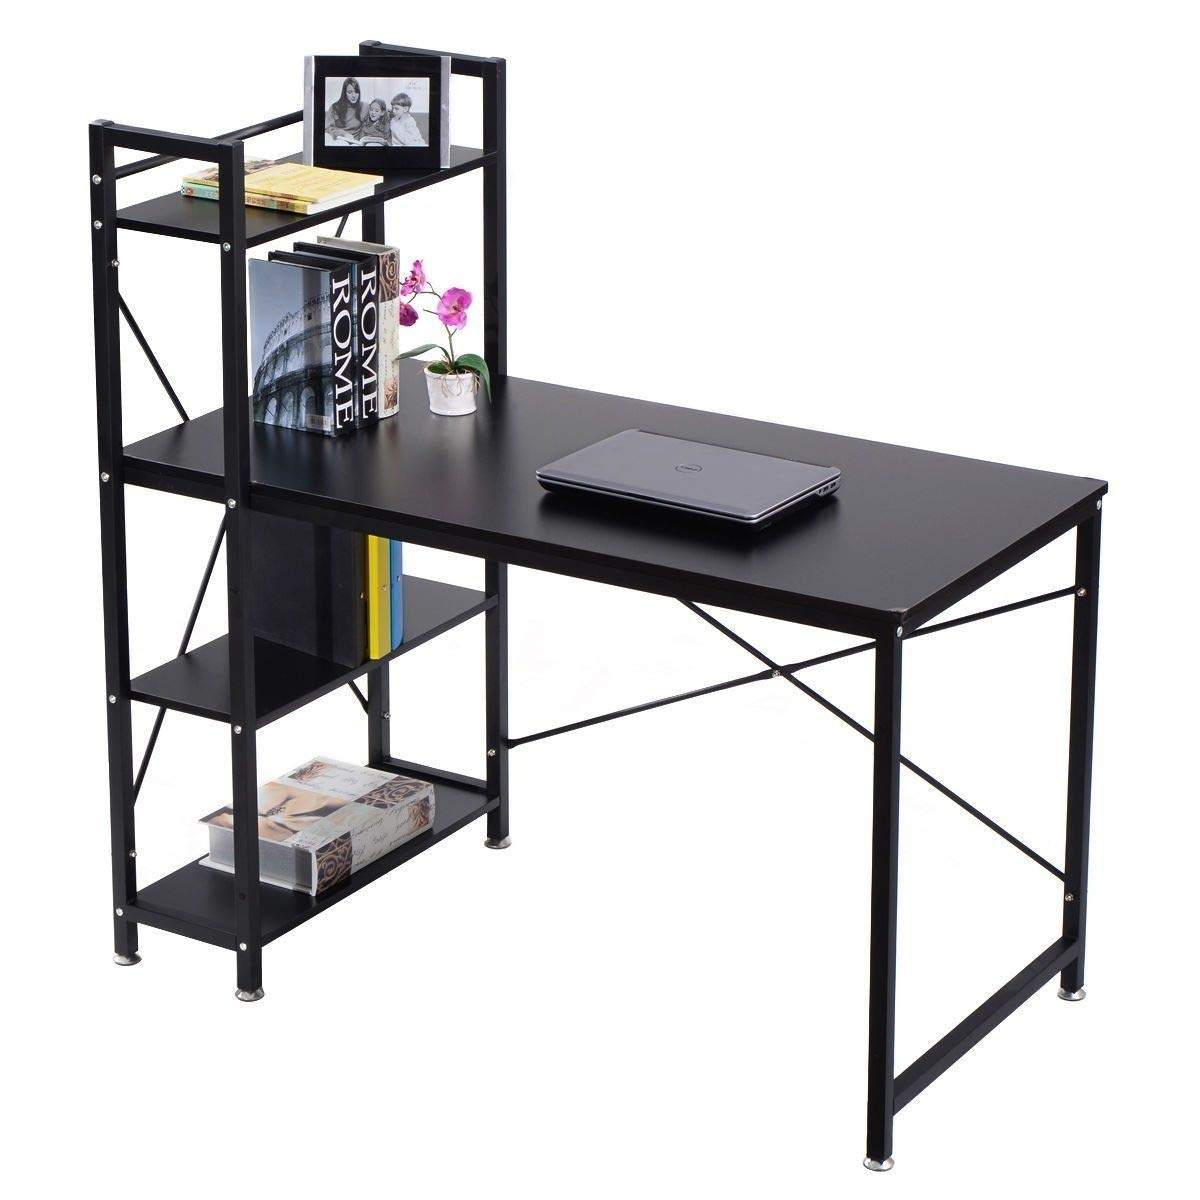 AK Energy Office 4-Tier Side Shelves Extra Space Modern Computer Desk PC Workstation Study Table Home Black Color